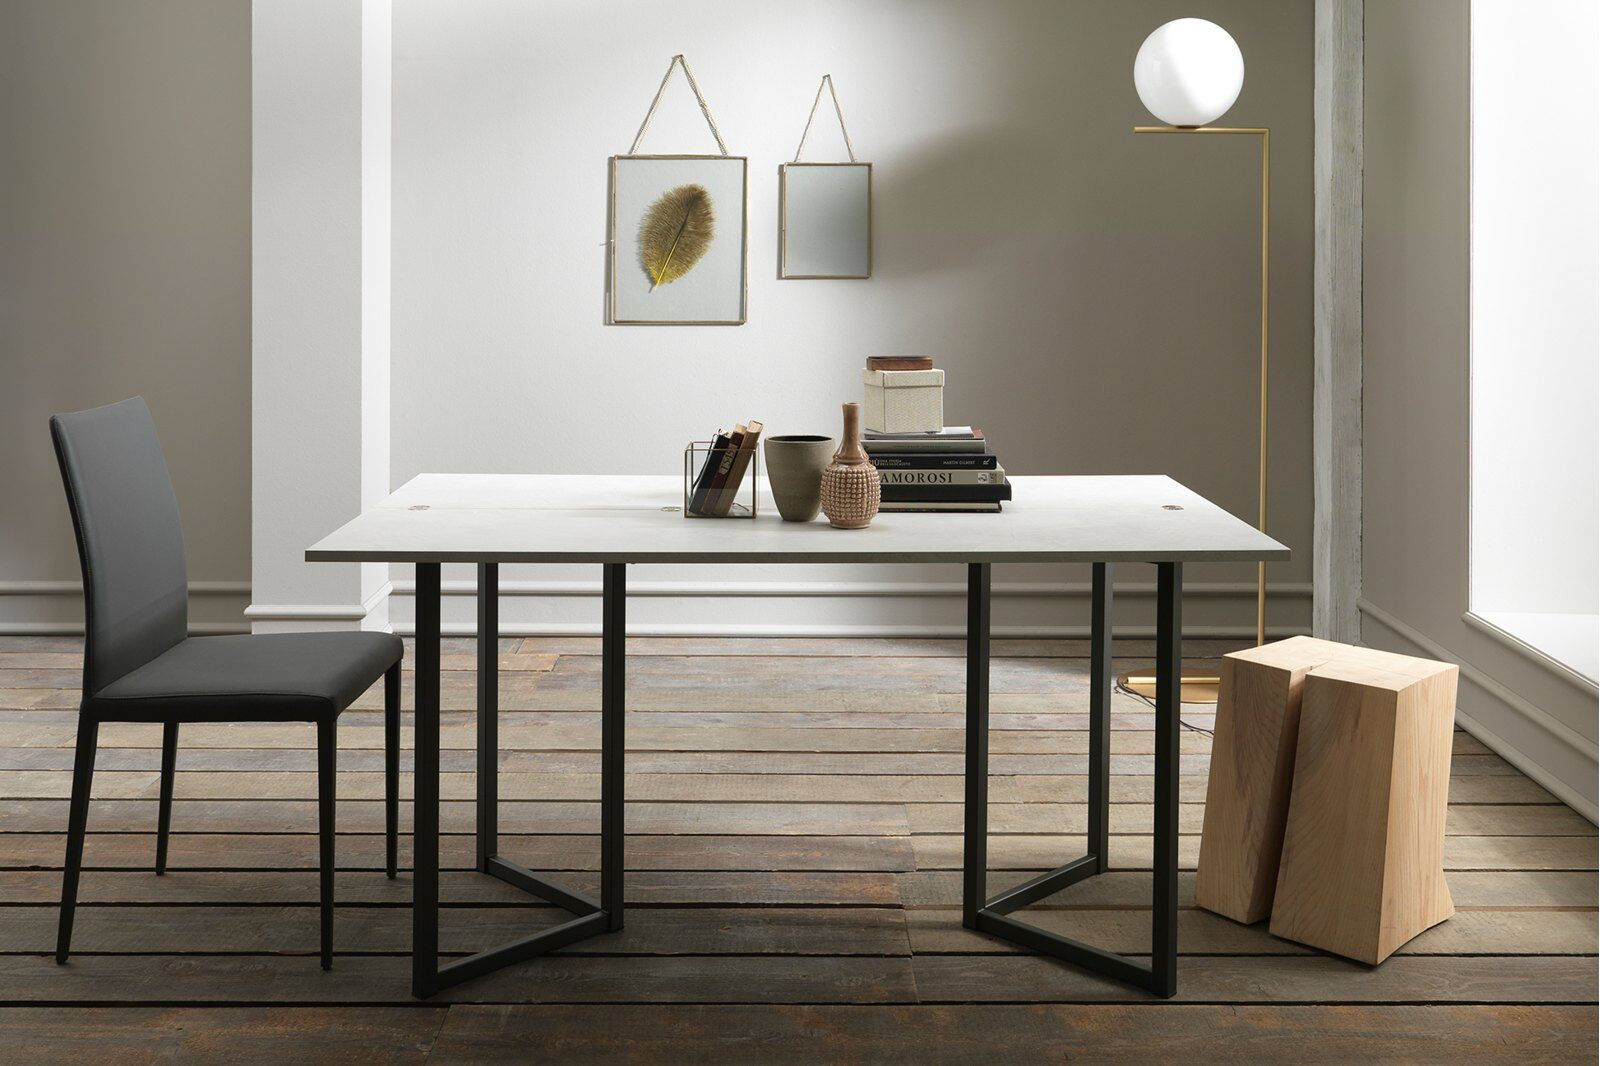 Flap Transforming Console - Dining Table 150 cm  / 1